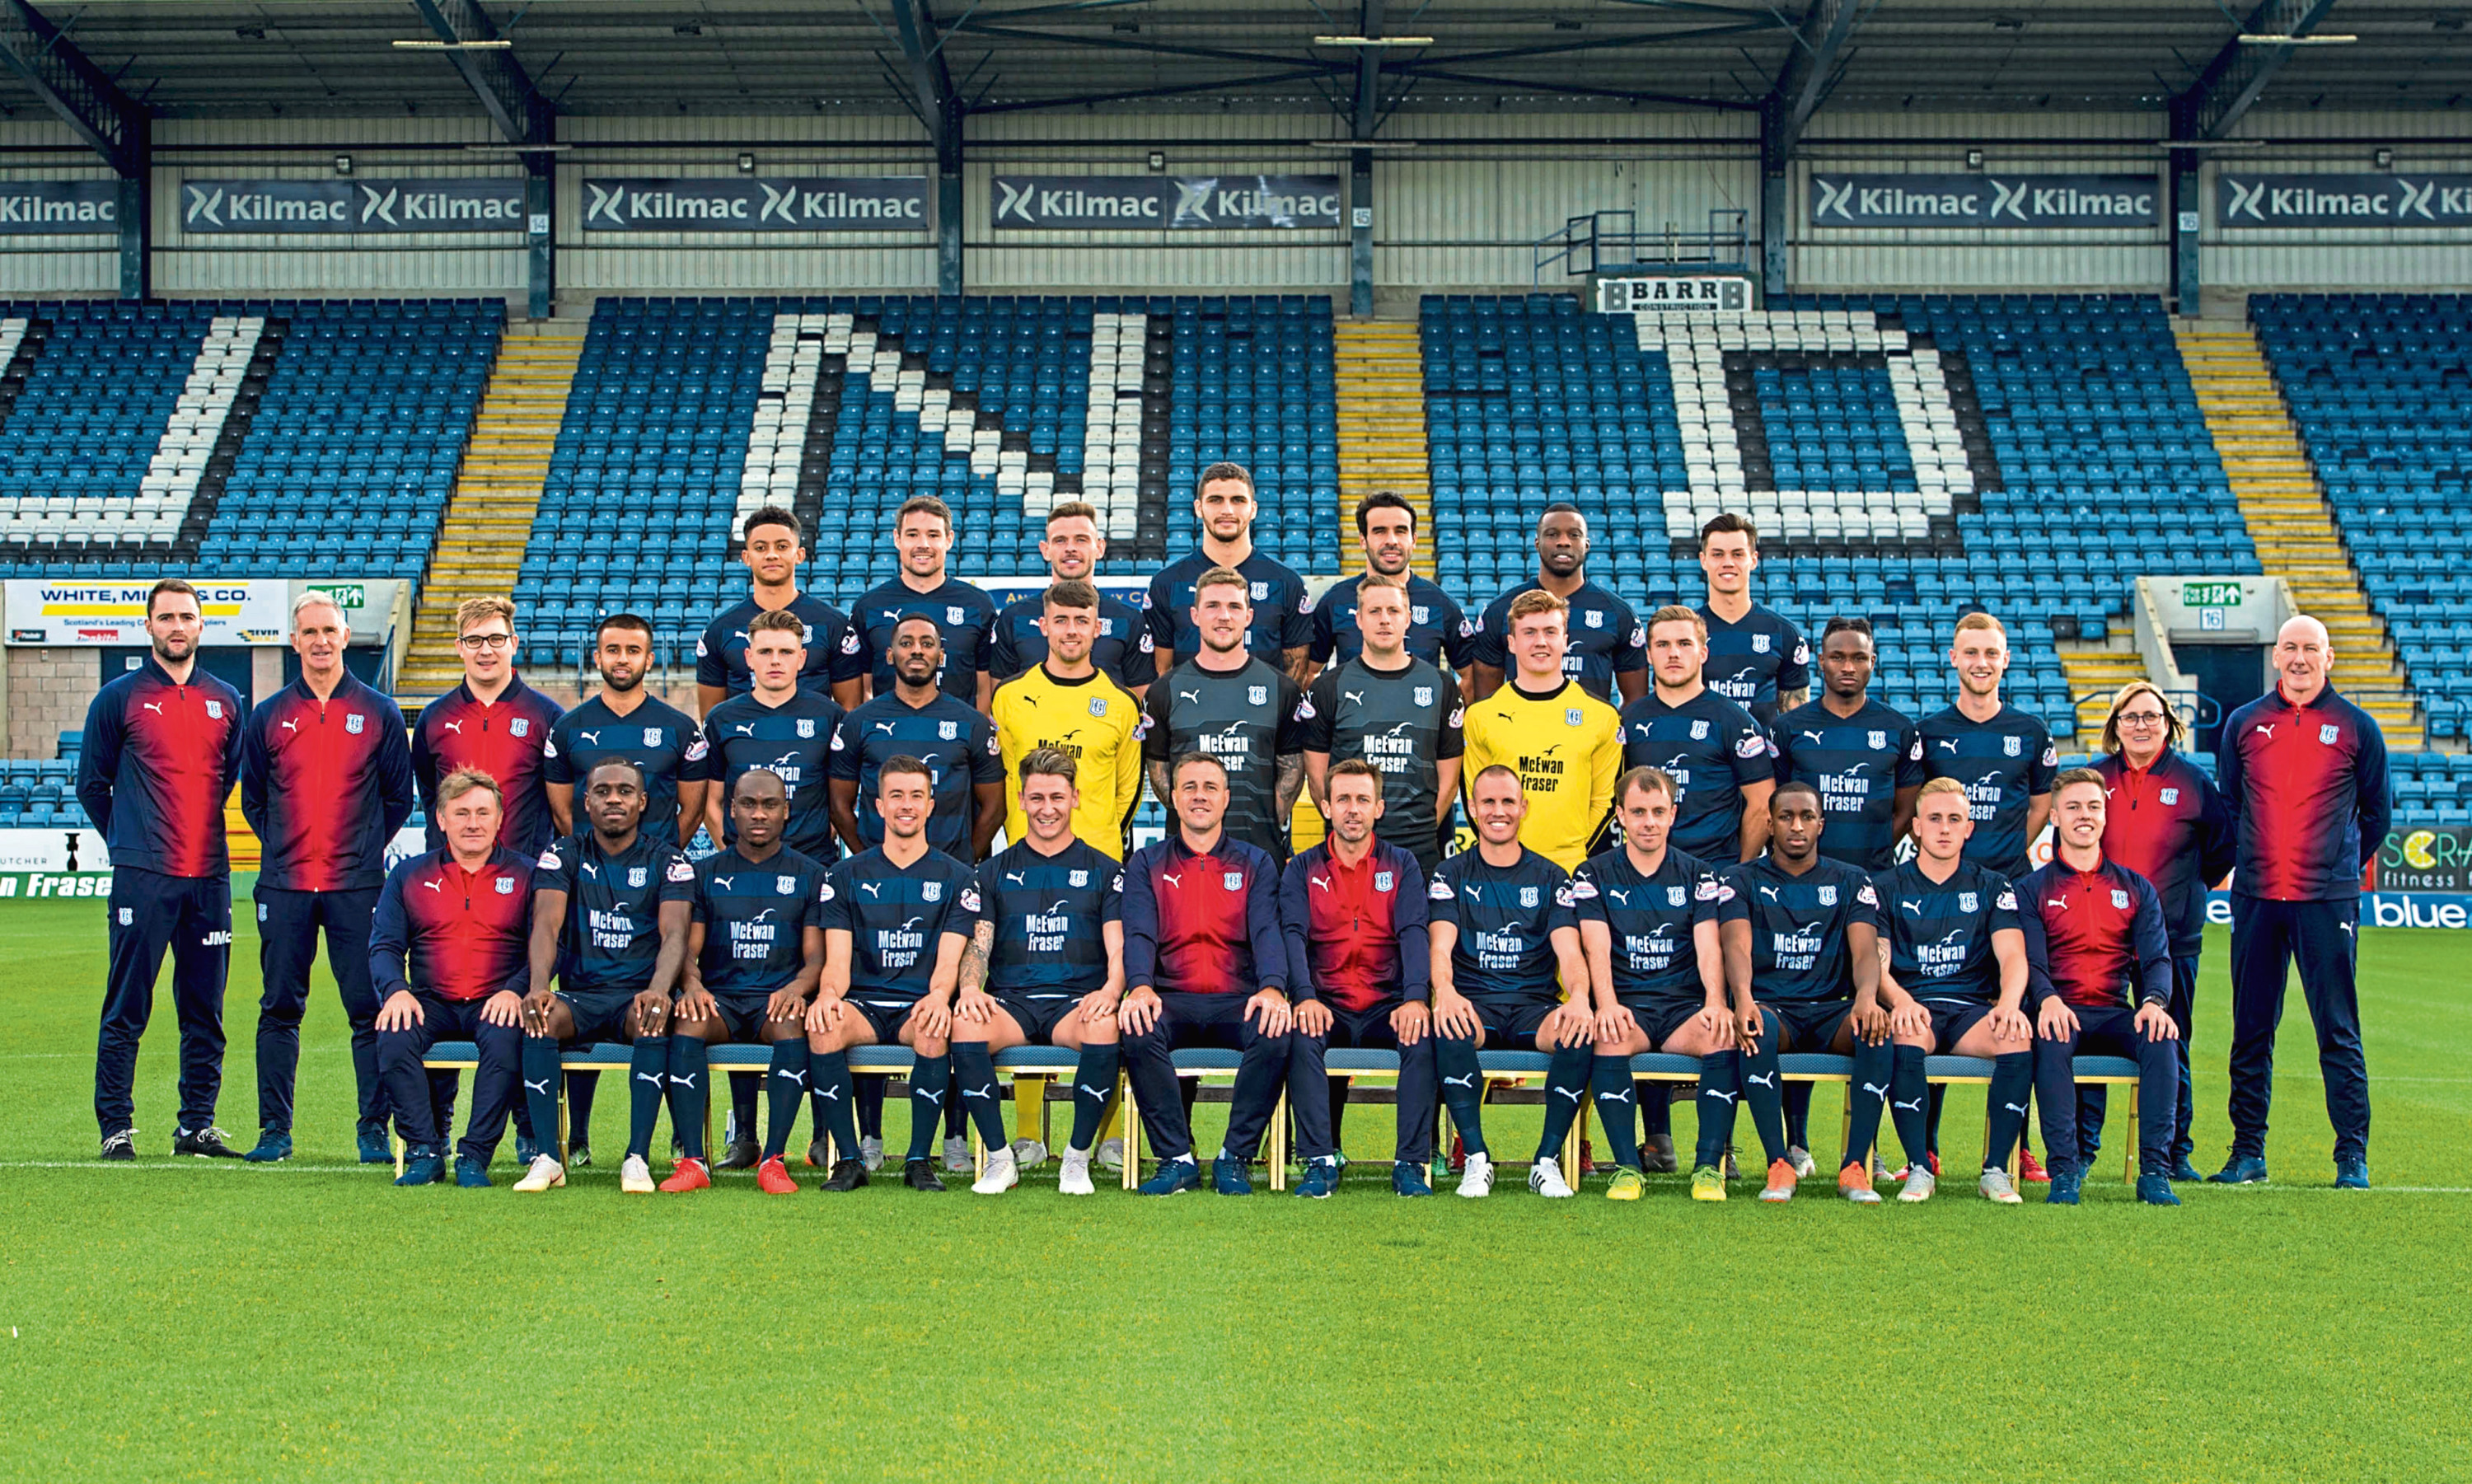 Of the 25 players pictured in Dundee's start-of-season team photo, only a handful are expected to still be playing for the club come the summer, whichever division they are in